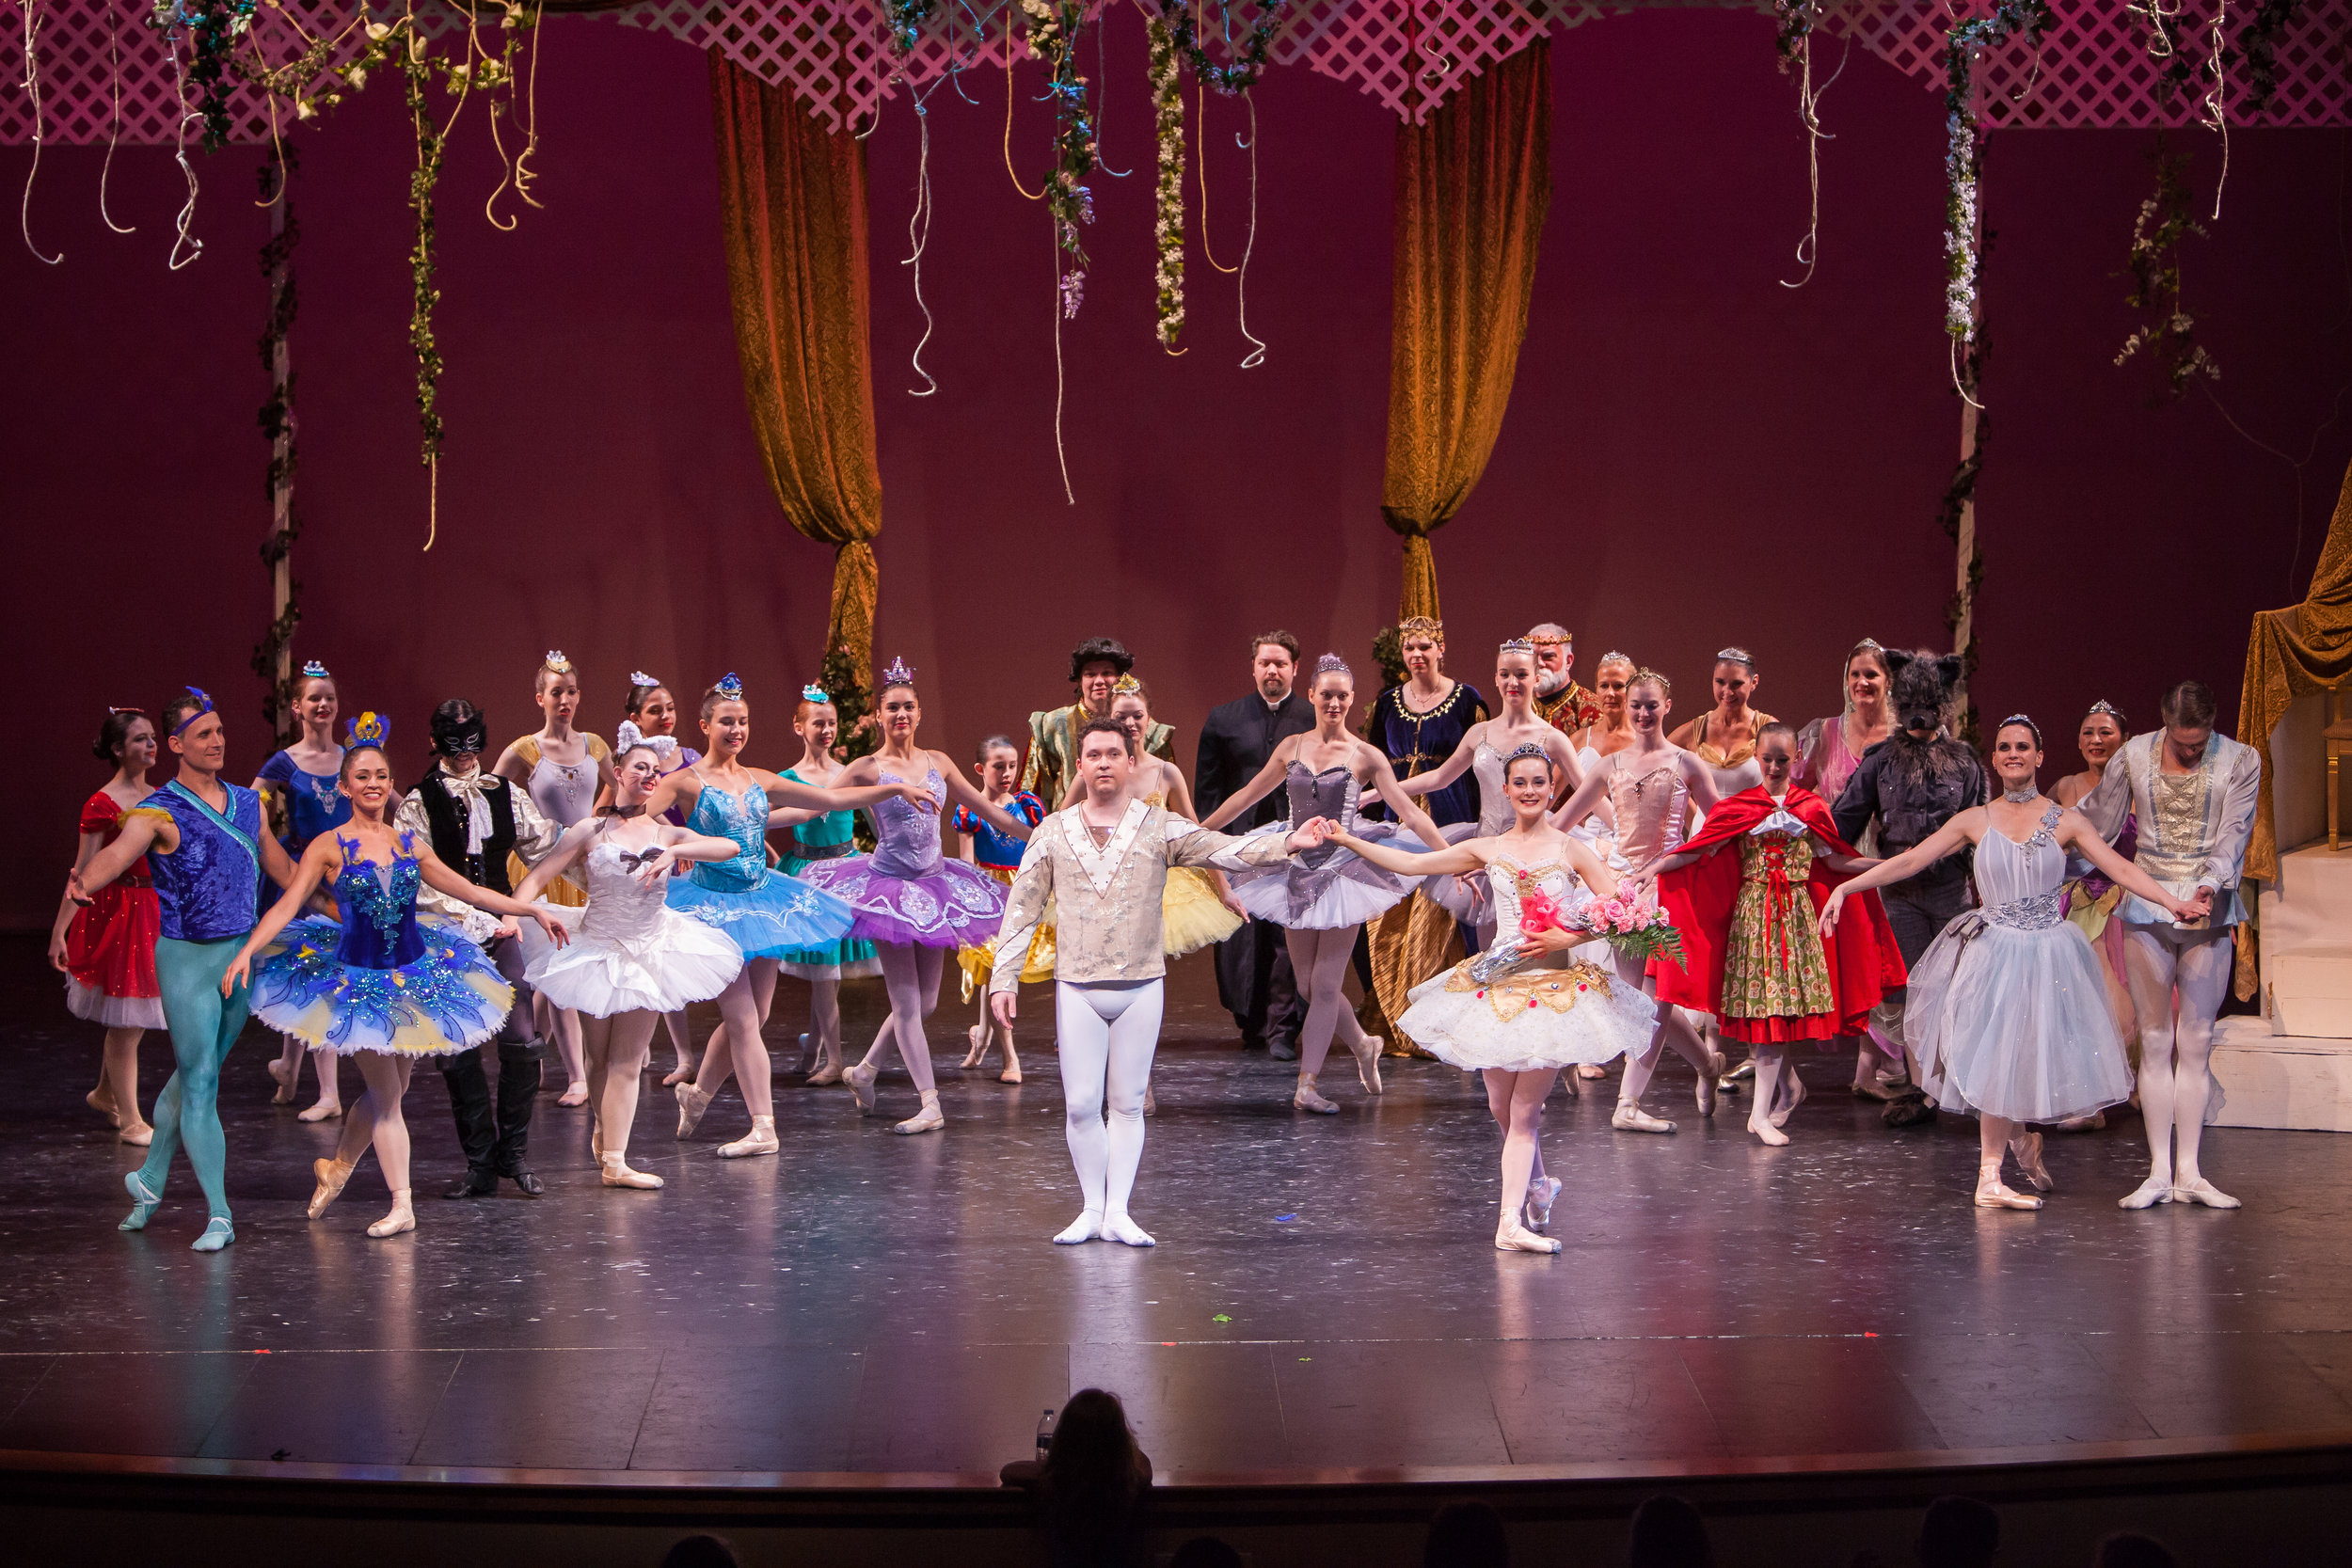 The Sleeping Beauty - One of Pyotr Ilyich Tchaikovsky's most favorite compositions in a 3 Act classical ballet, with all the whimsy and wonder you'd expect.